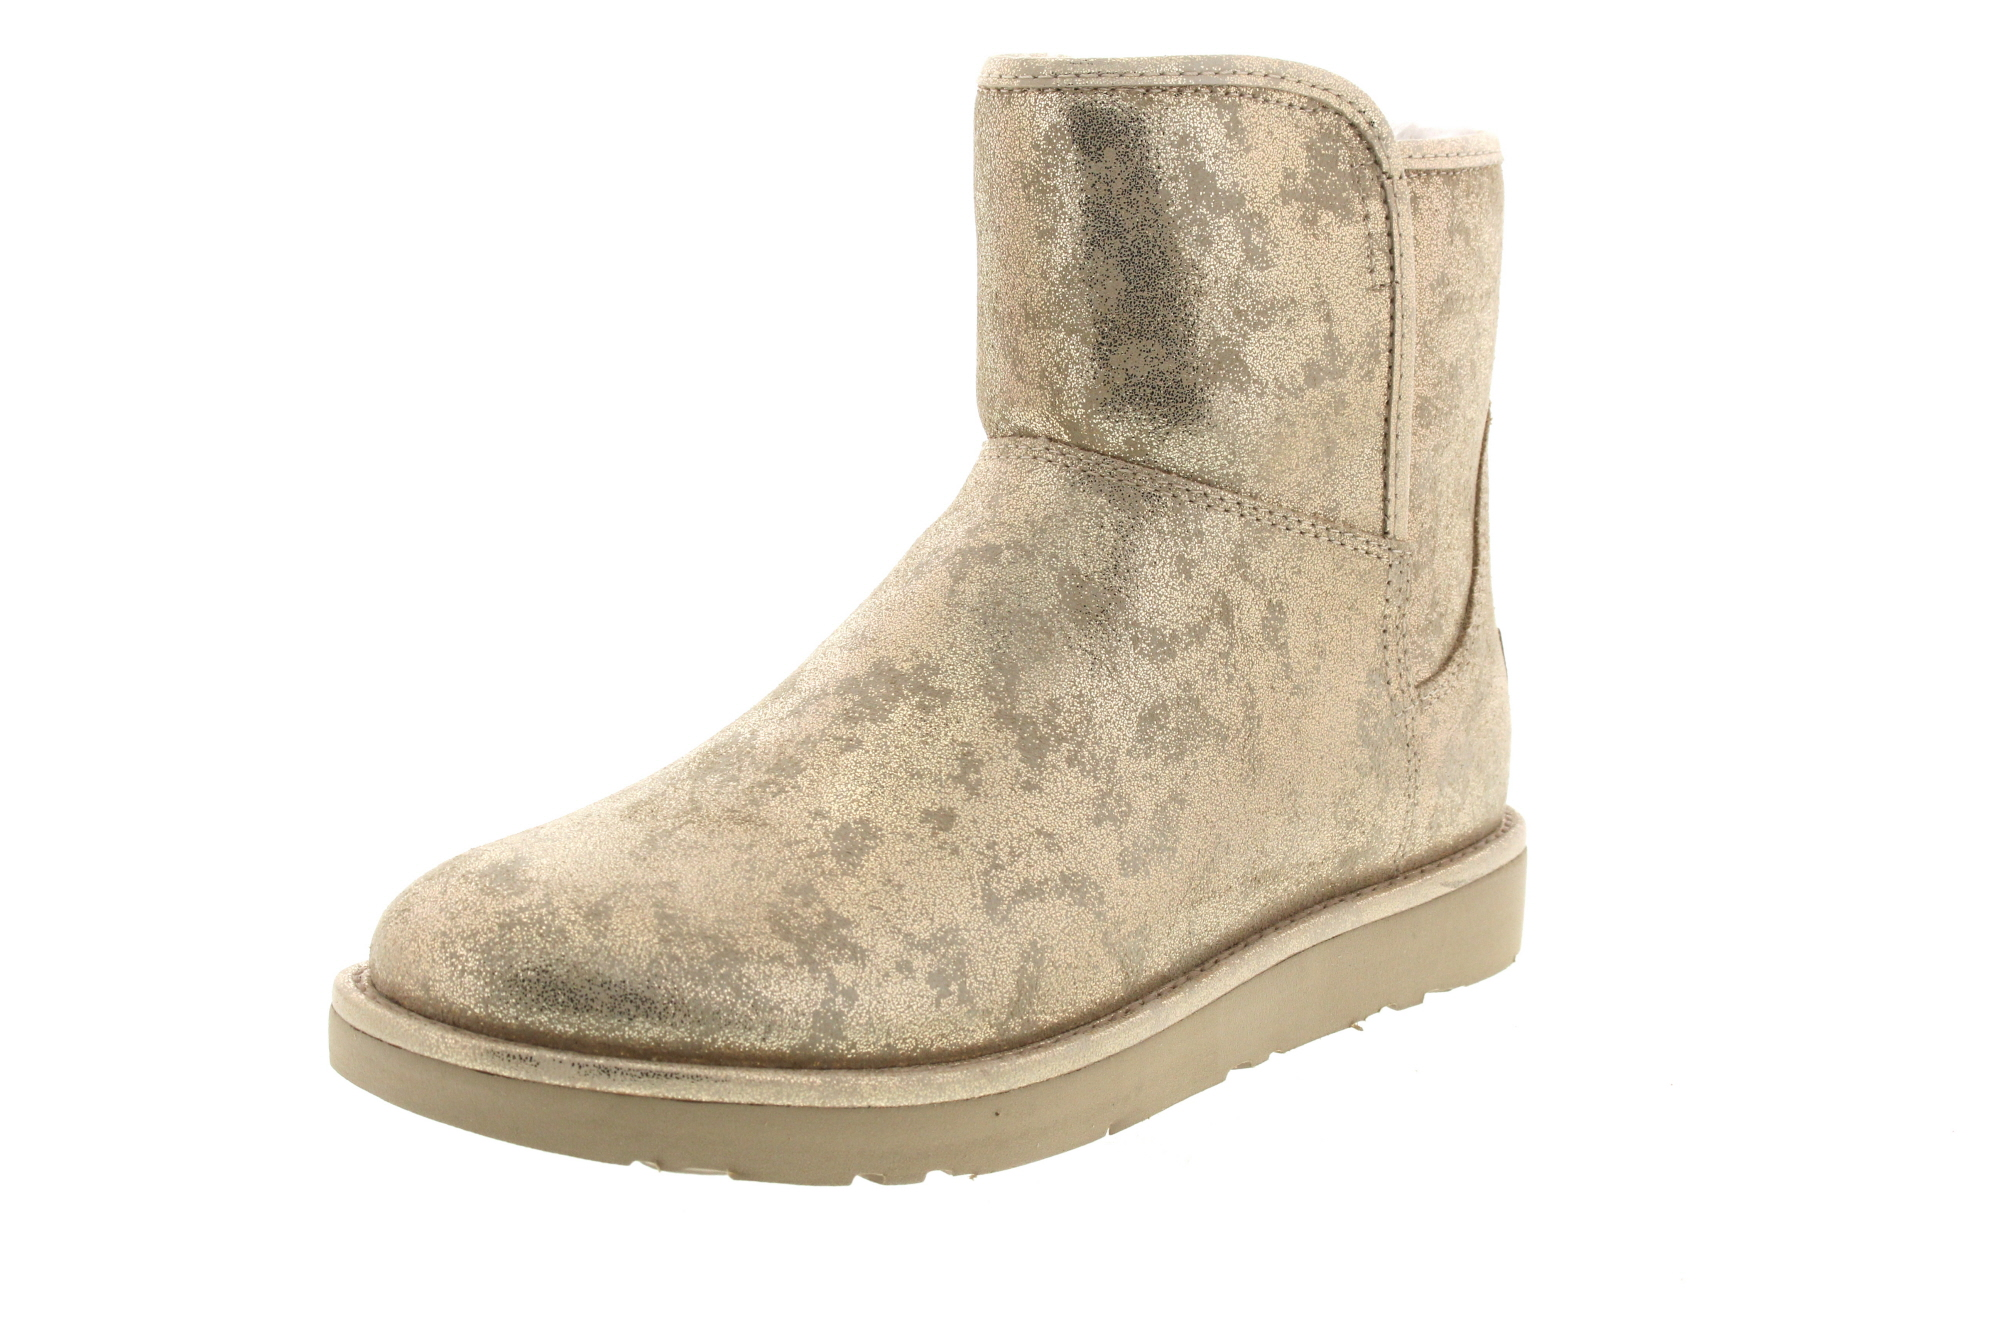 UGG Damen Stiefelette ABREE MINI STARDUST metallic gold_0